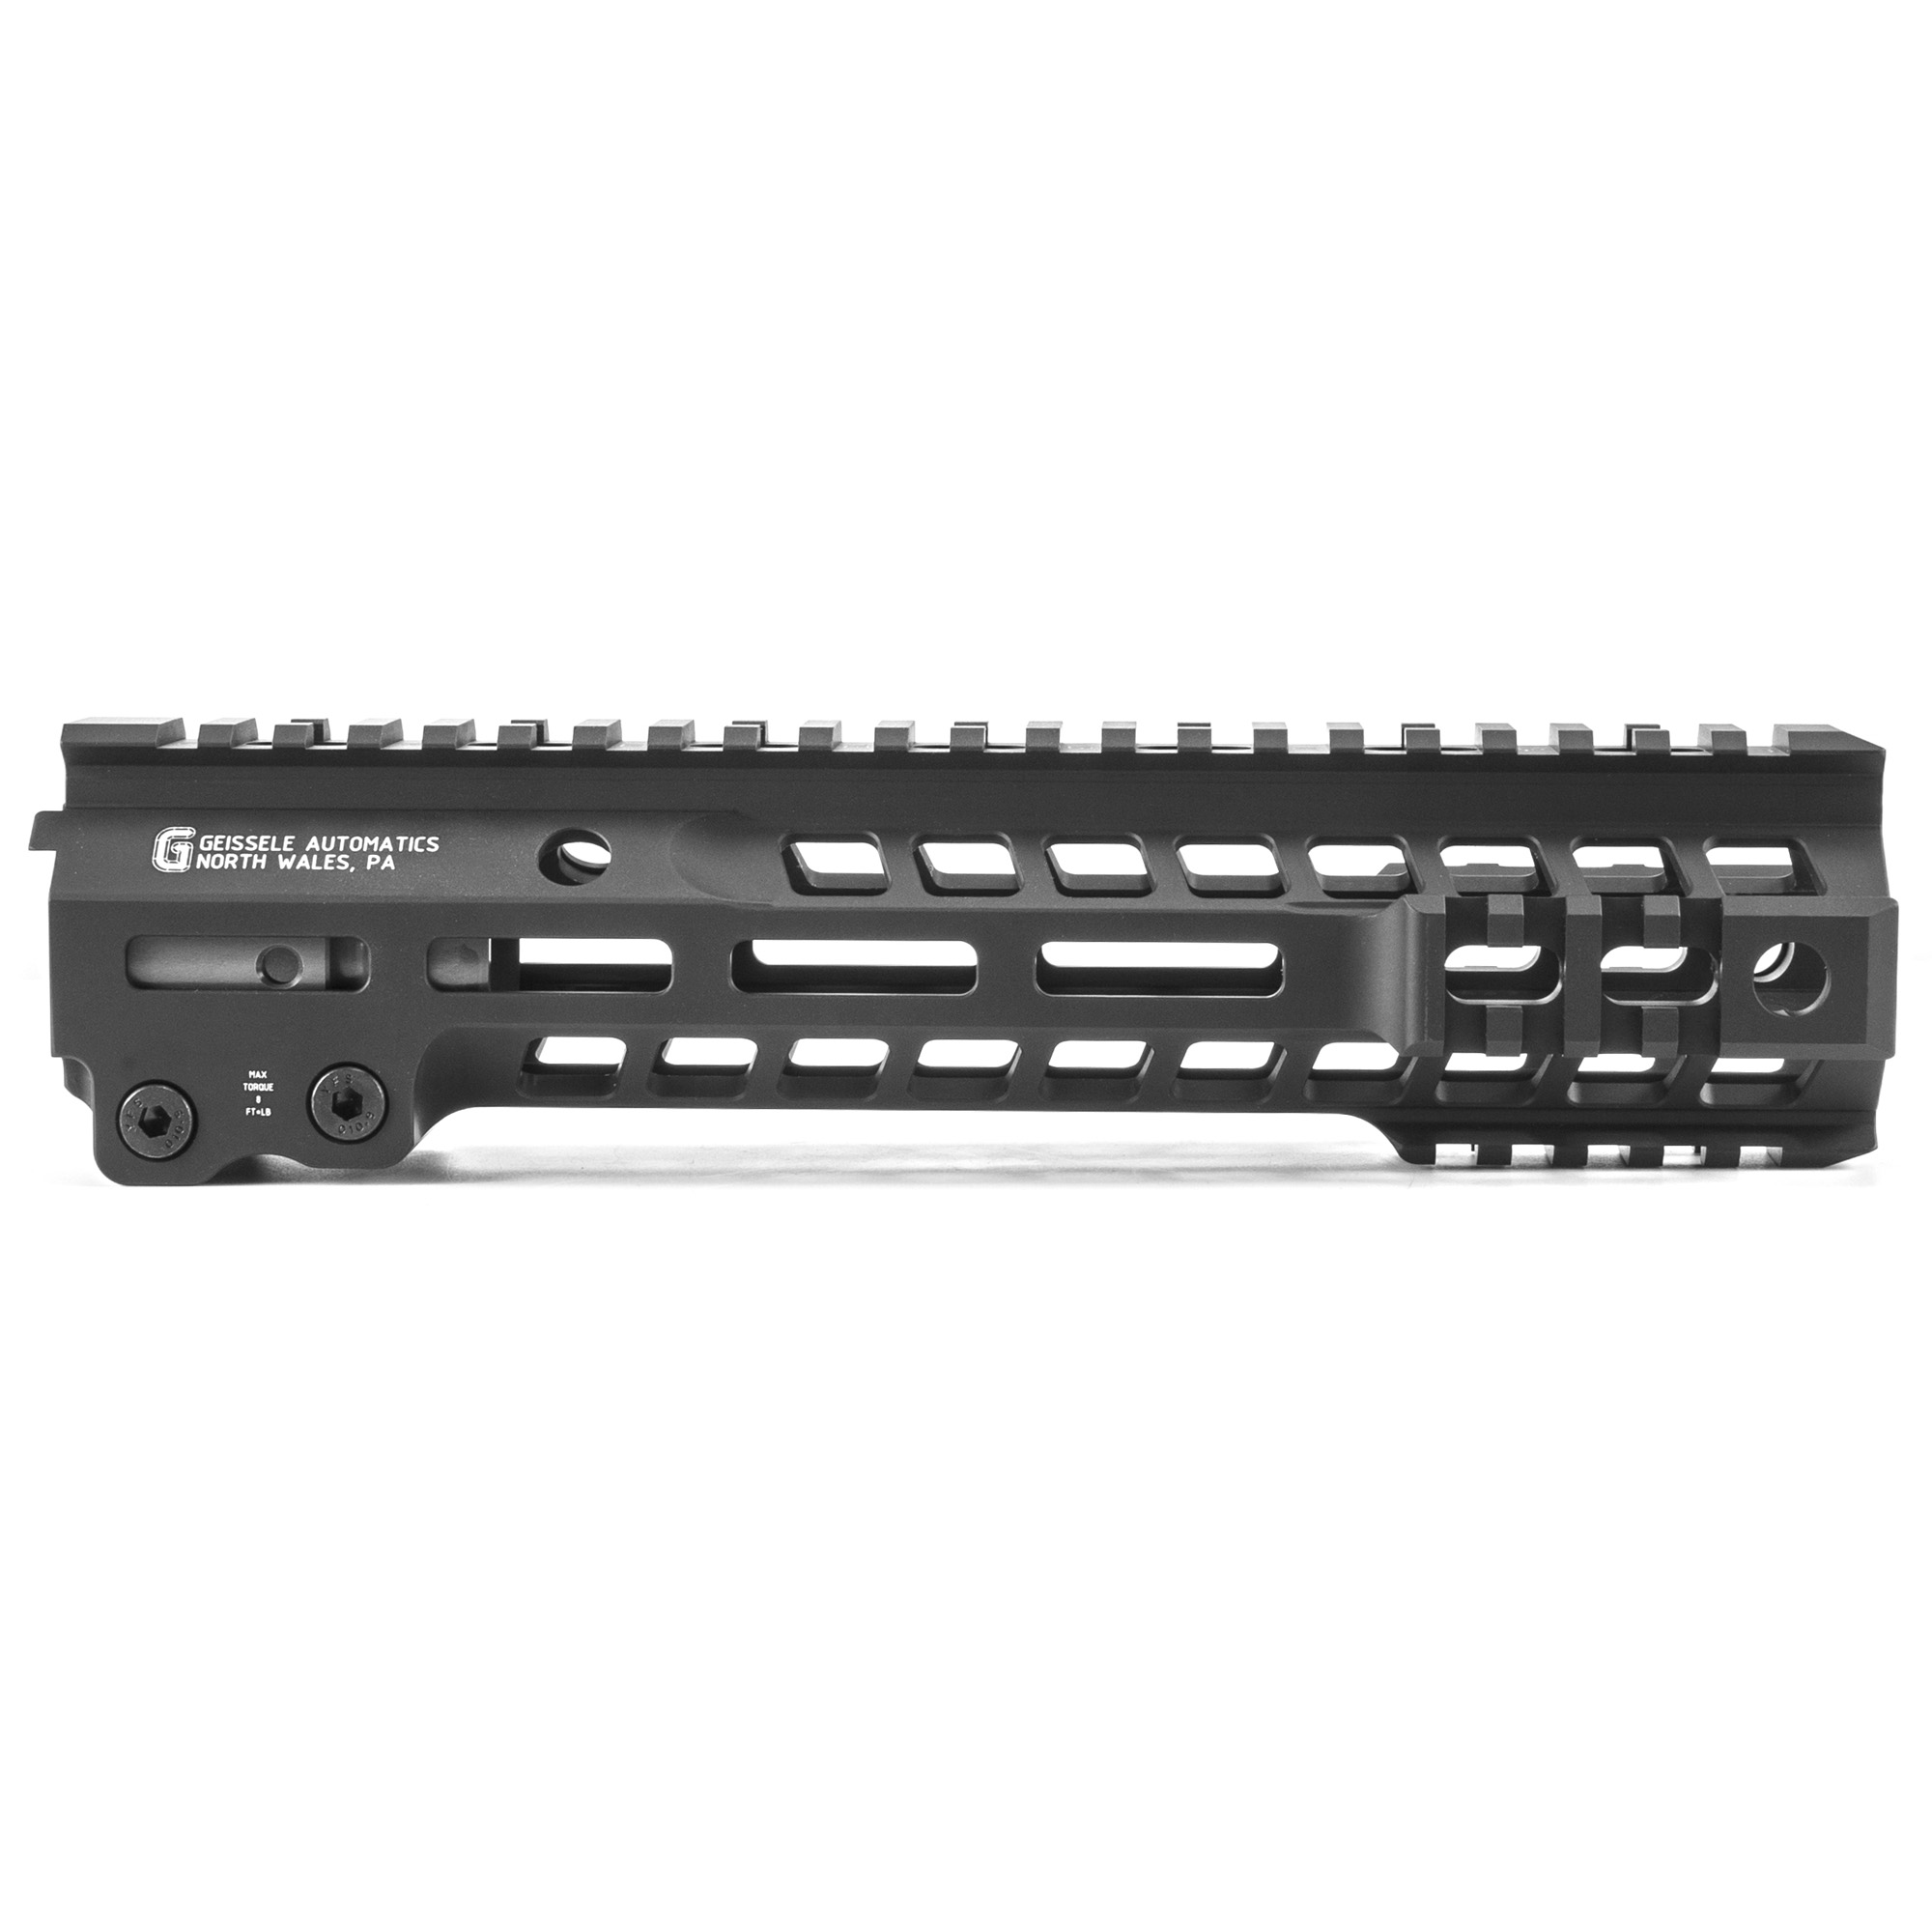 """Geissele's Super Modular 9.5"""" MK13 M-Lok Rail"""" is the latest entry to the Geissele line up of Super Modular Rails. The new handguard design offers a smaller diameter and overall height to create a slimmer package. Included with the MK13 Super Modular Rail is an updated version of the proven Geissele Barrel Nut design"""" not only providing ease of installation but superior rigidity. The long surface contact of the 2.25"""" barrel nut interfaces with the receiver creating a platform that can be trusted to be straight and true the entire length of the free float rail. The MK13 is precision machined using 6061-T6 aluminum due to its strength"""" rigidity and lightweight properties. Utilizing Magpul's M-LOK technology in the 3"""" 6"""" and 9 o'clock positions and machined-in Picatinny rails at the end allow the end user to customize their rifle and securely mount lights"""" bipods and other firearm accessories. The Geissele MK13 Super Modular rail is Type 3 Hardcoat Anodized. This product is bundled with a low-profile Geissele Super Gas Block."""